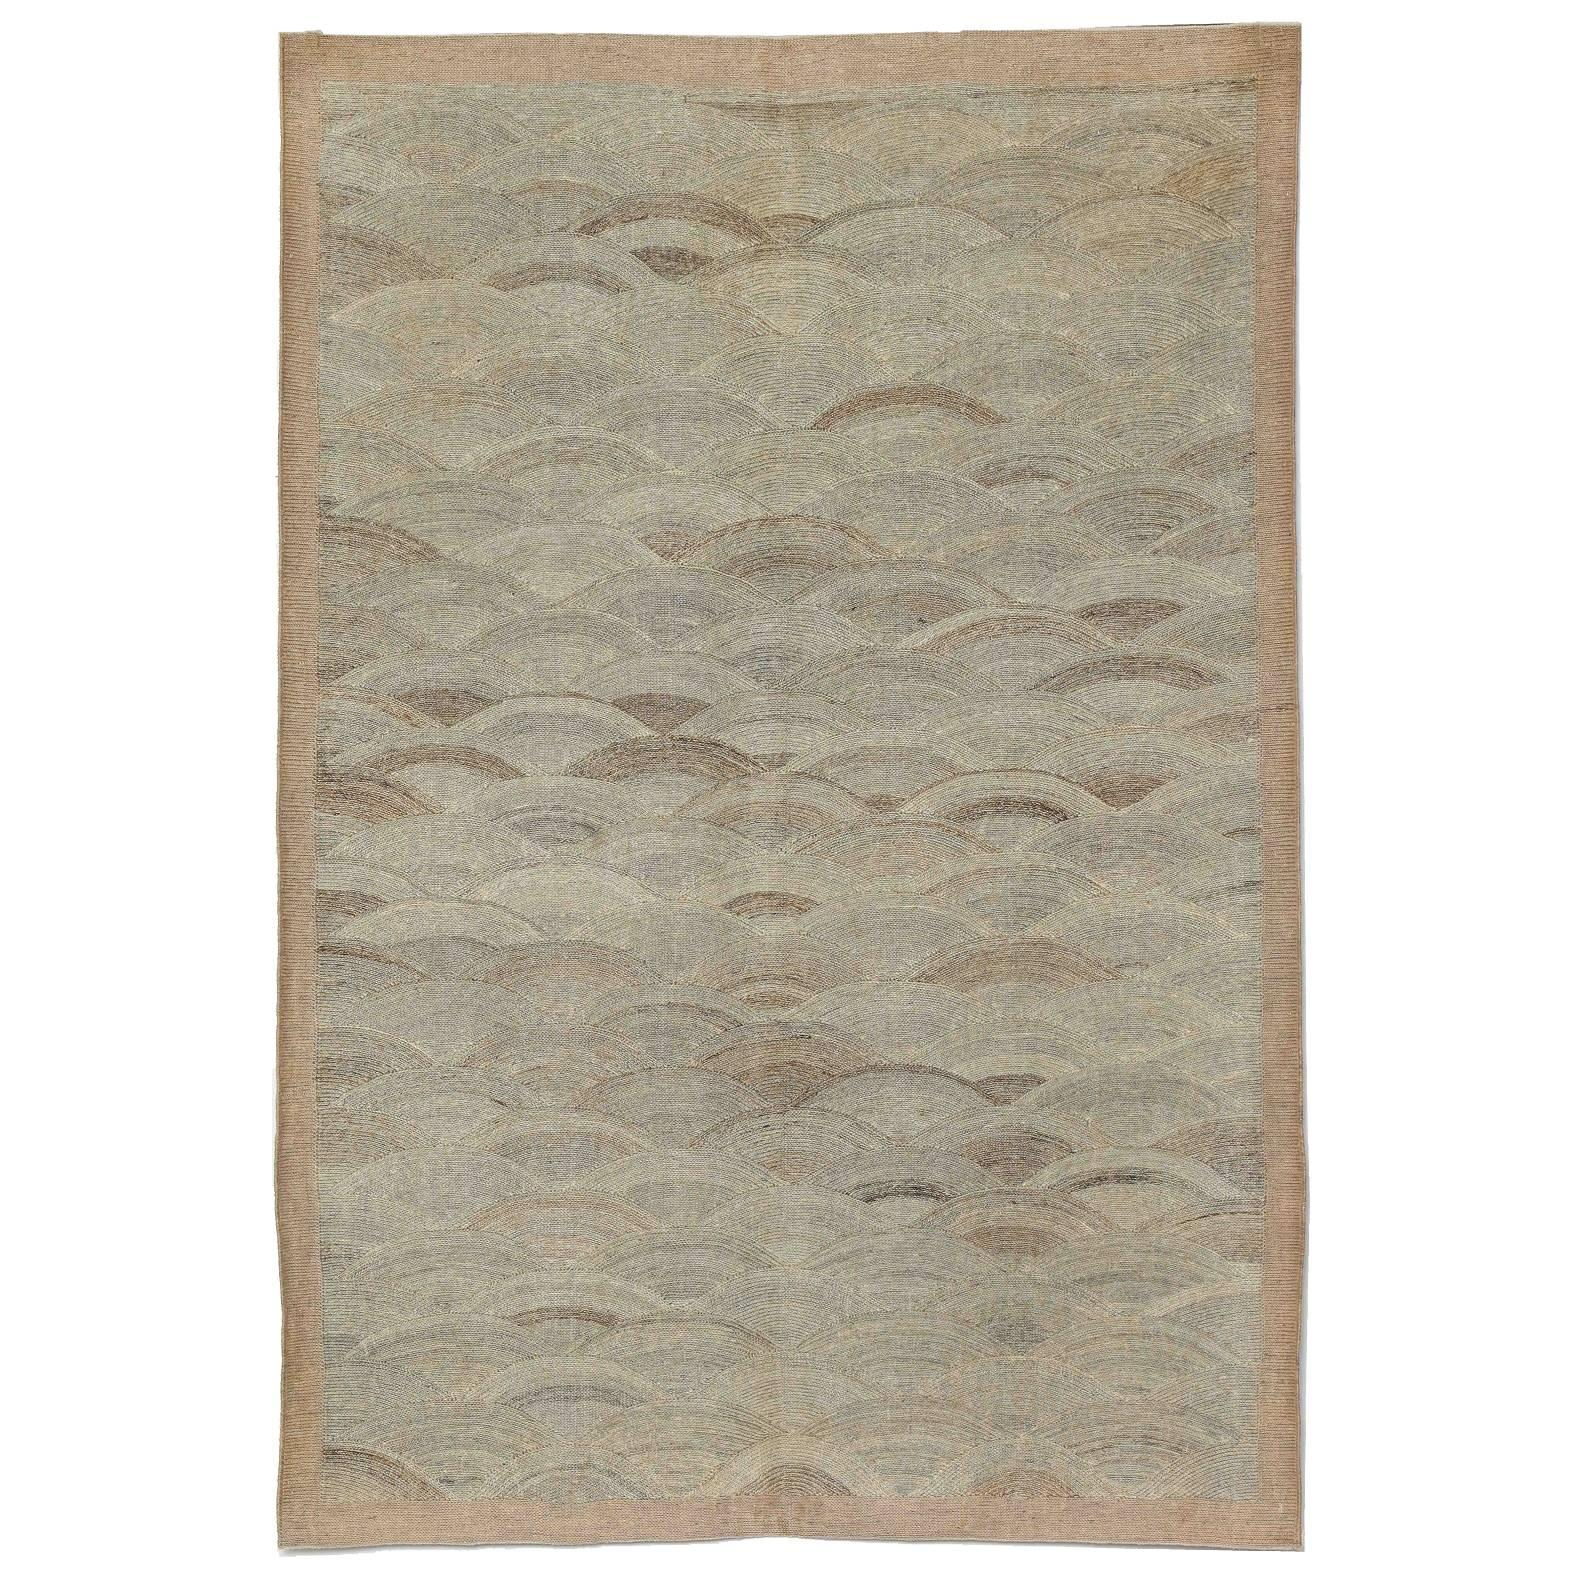 Orley Shabahang Signature Flat-Weave Carpet in Pure Handspun Wool, Undyed Field